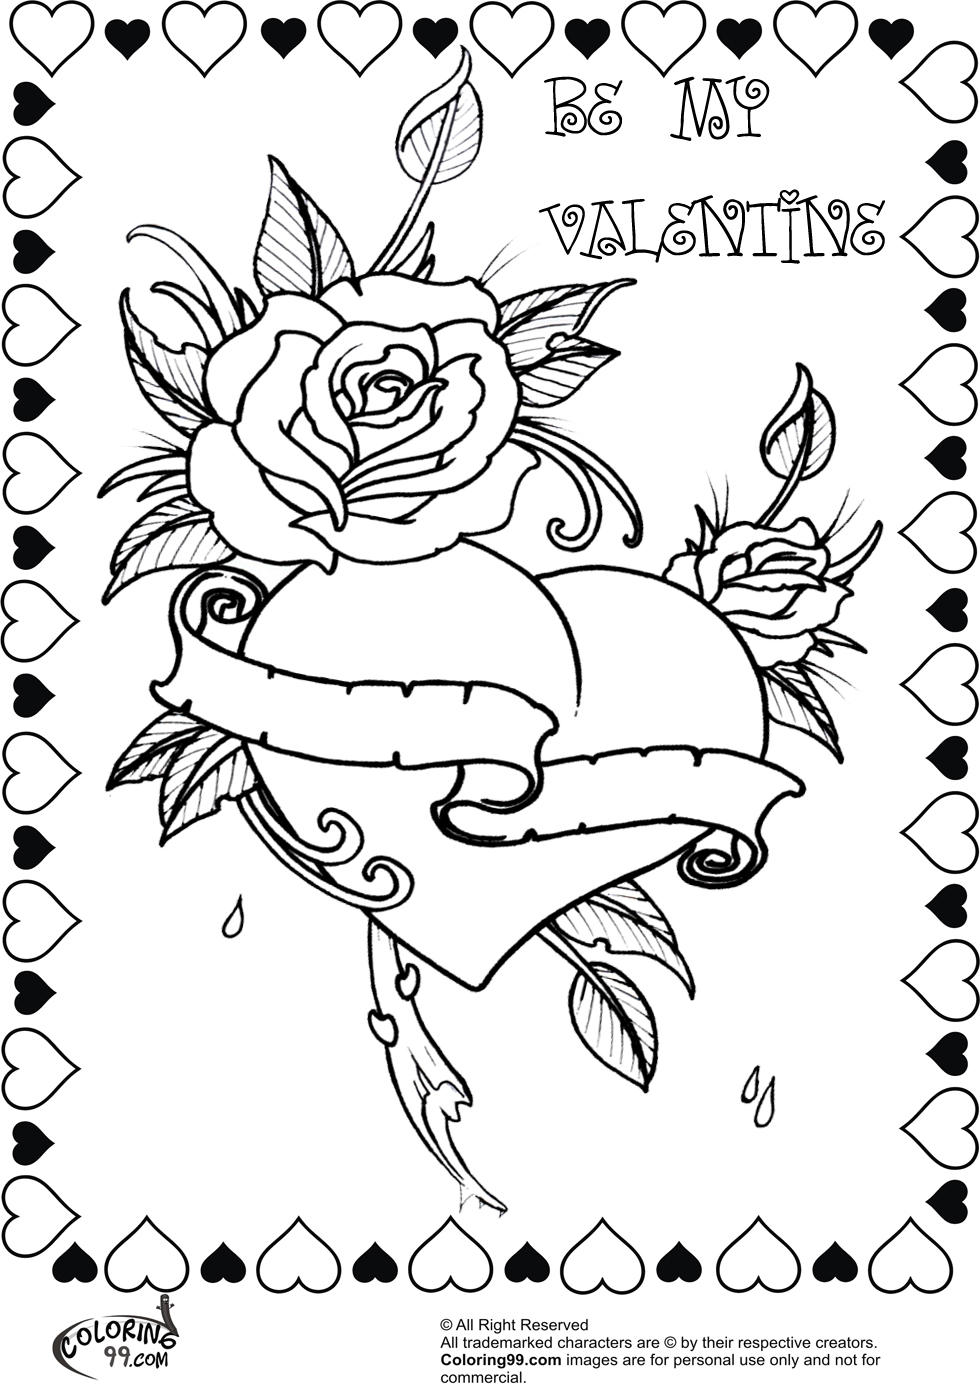 valentines color pages valentines day coloring pages let39s celebrate valentines pages color